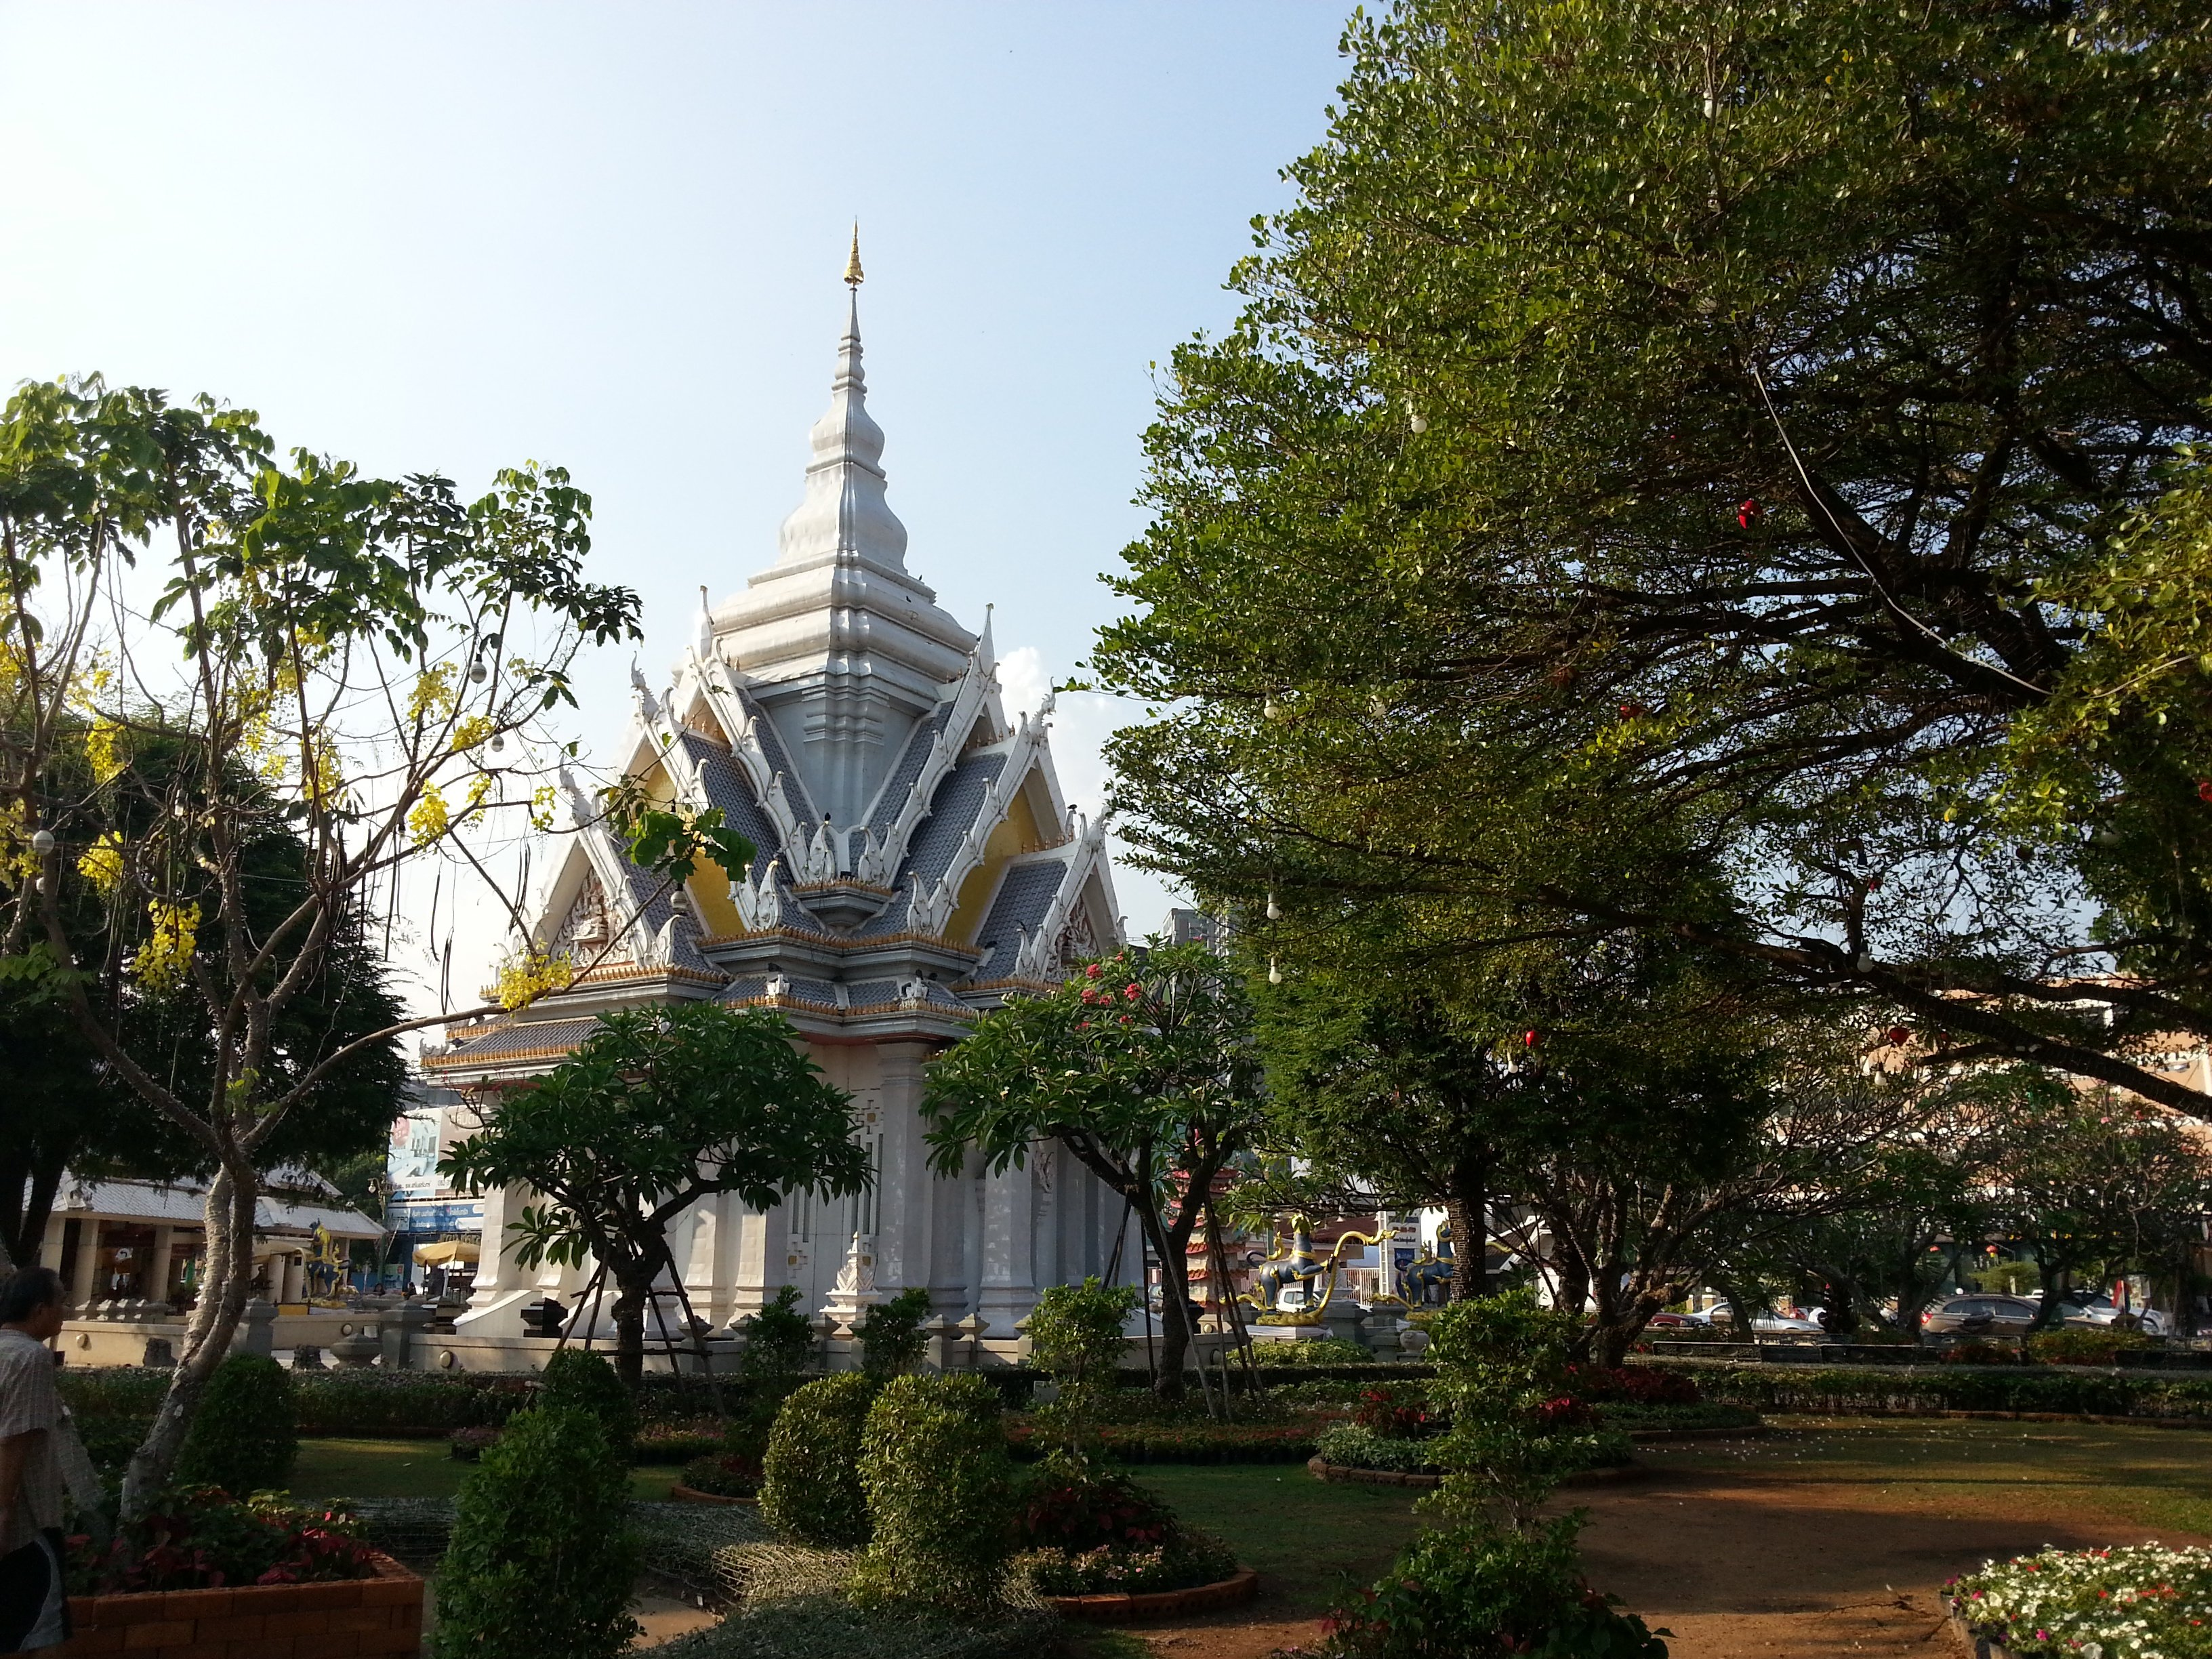 Khon Kaen's City Pillar Shrine is located in a small park